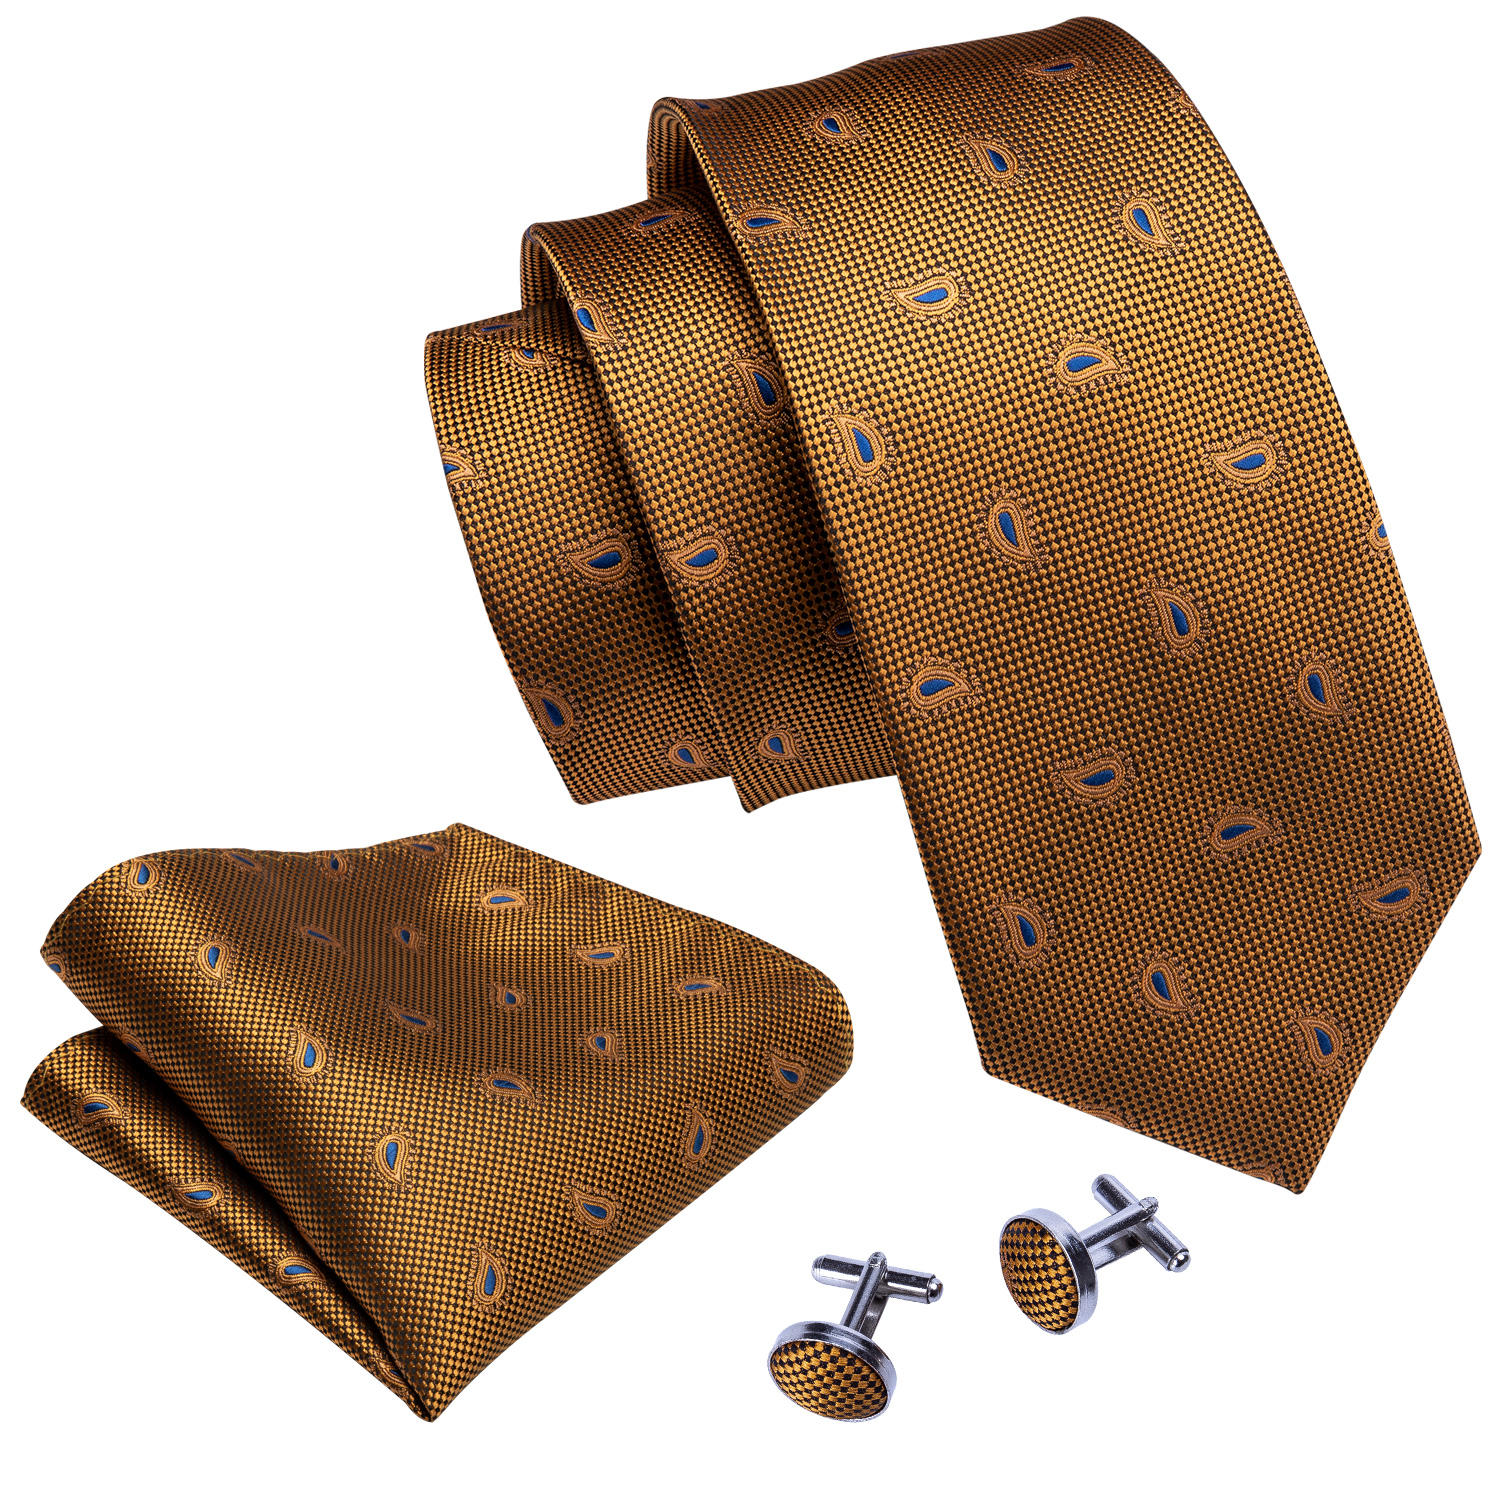 New Mens Ties 100% Silk Jacquard Woven Golden Paisley Silk Neck Tie Set